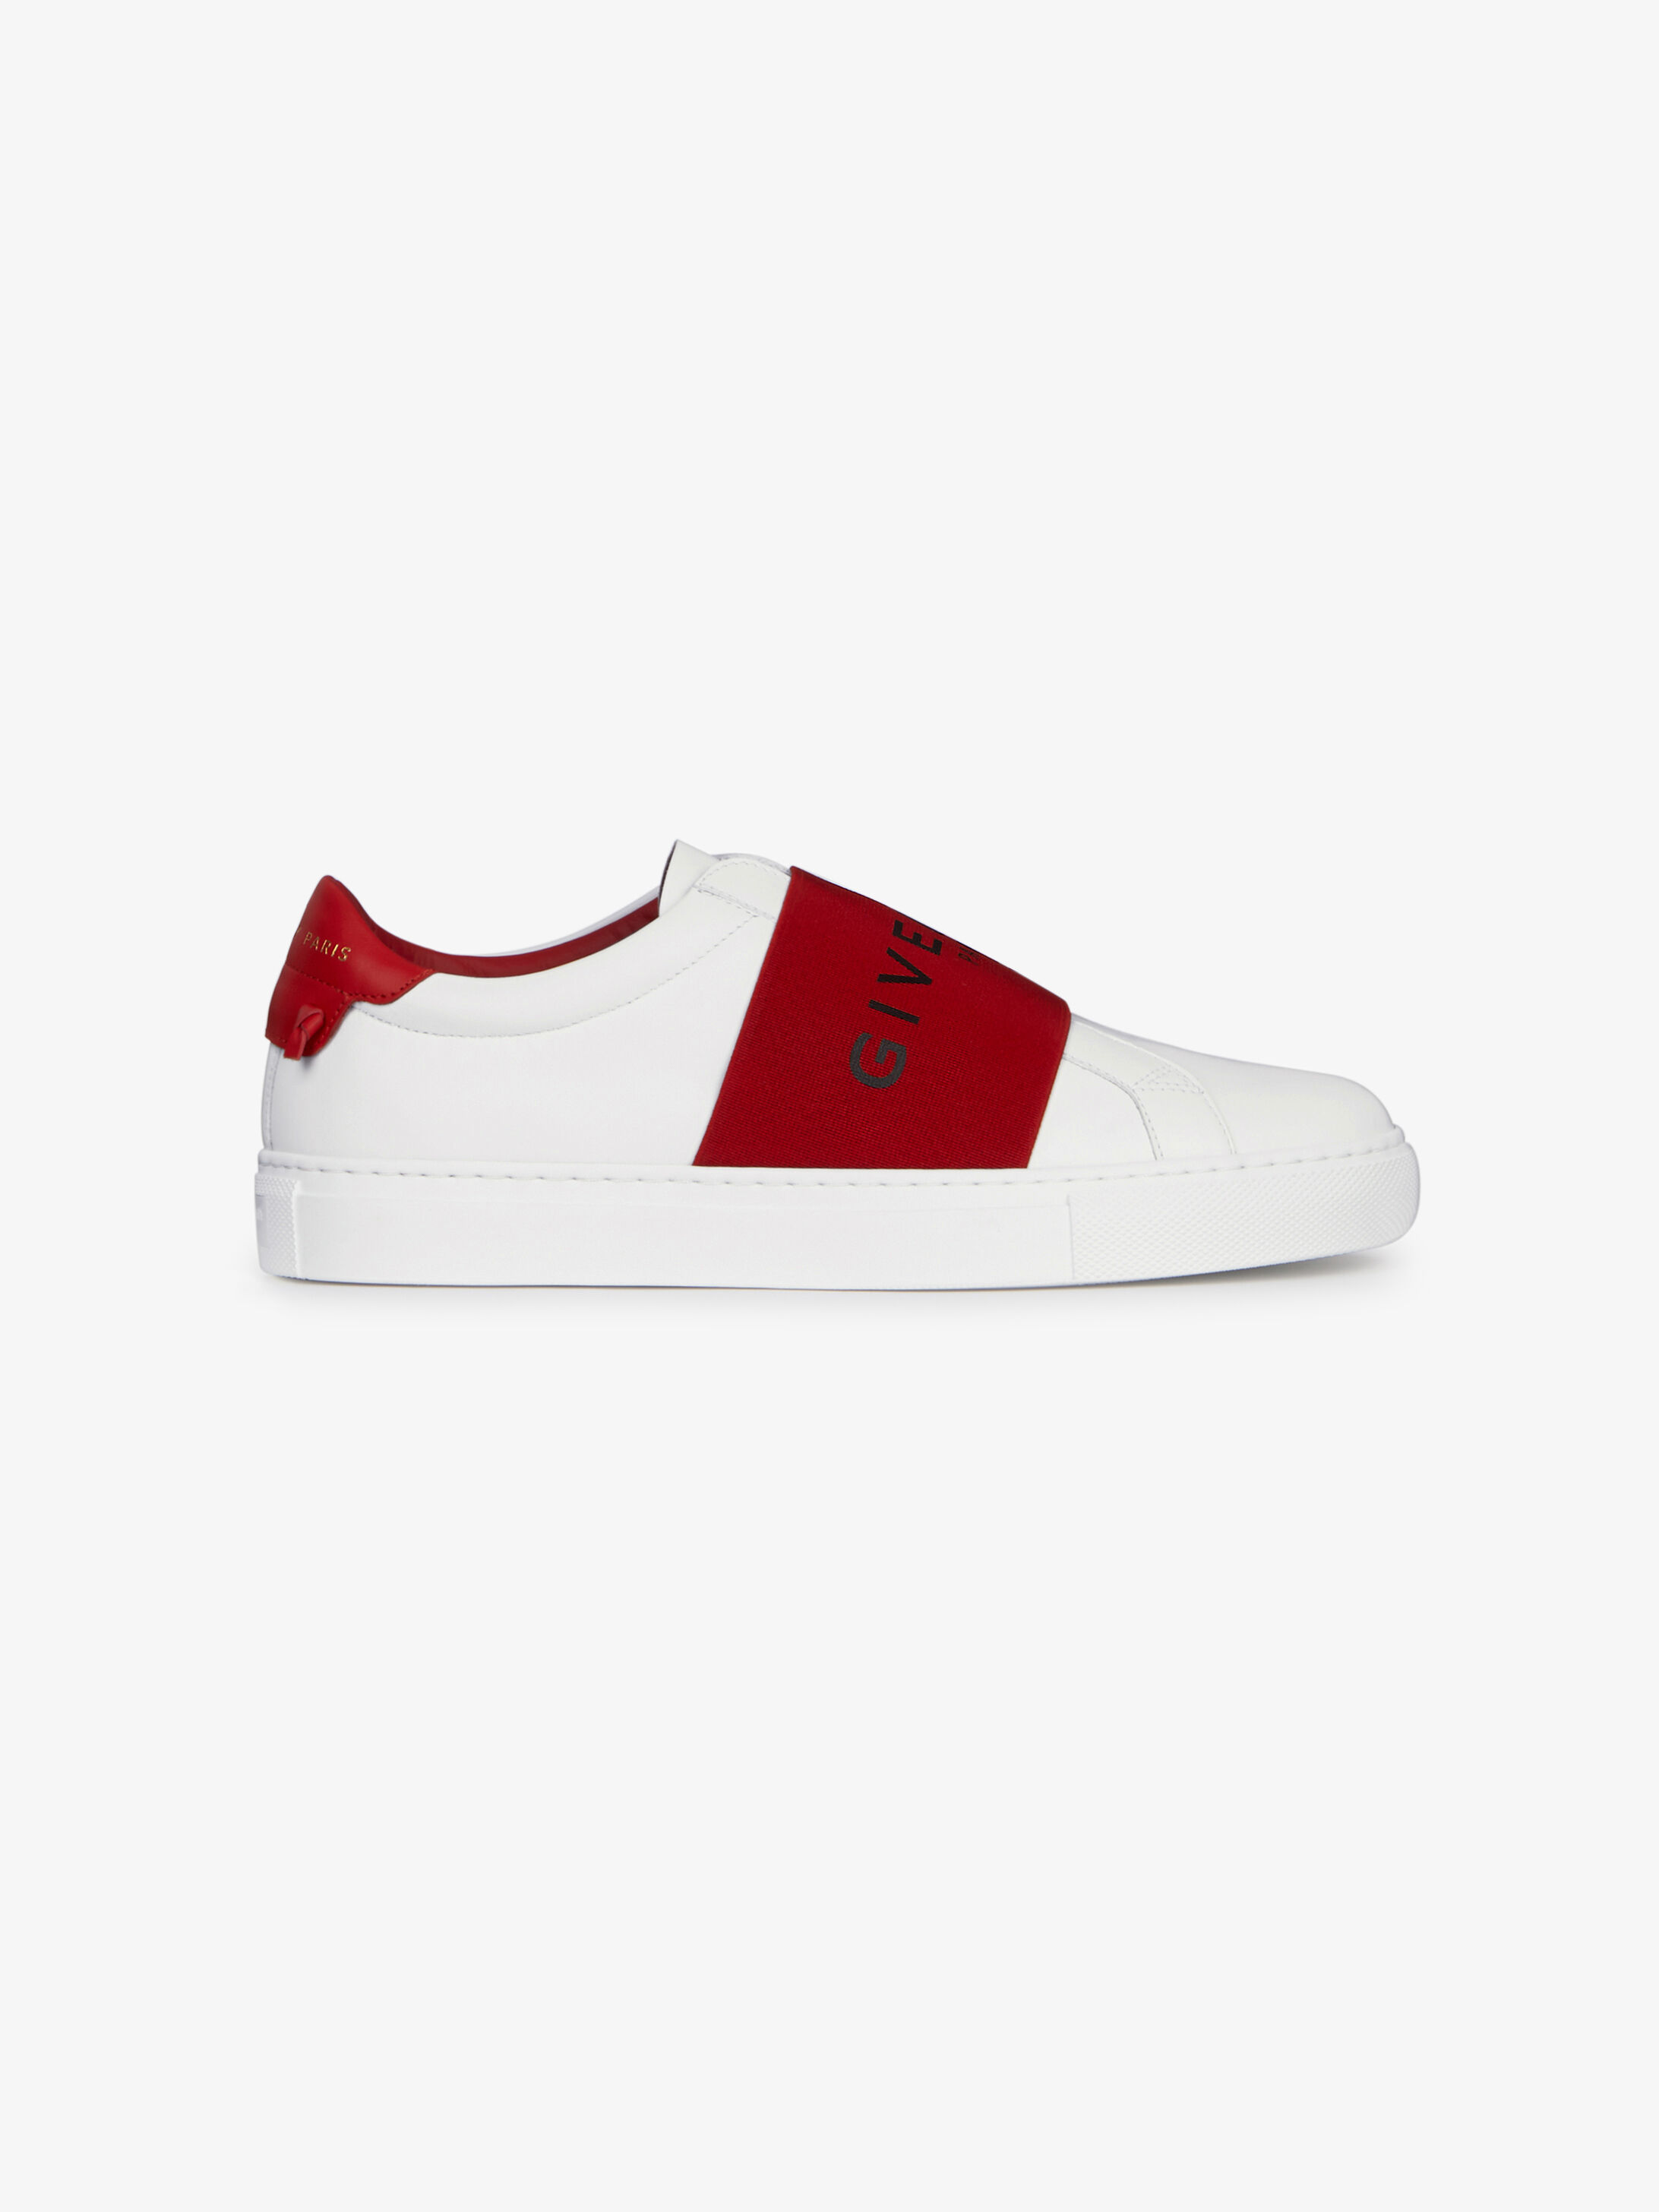 pink givenchy shoes